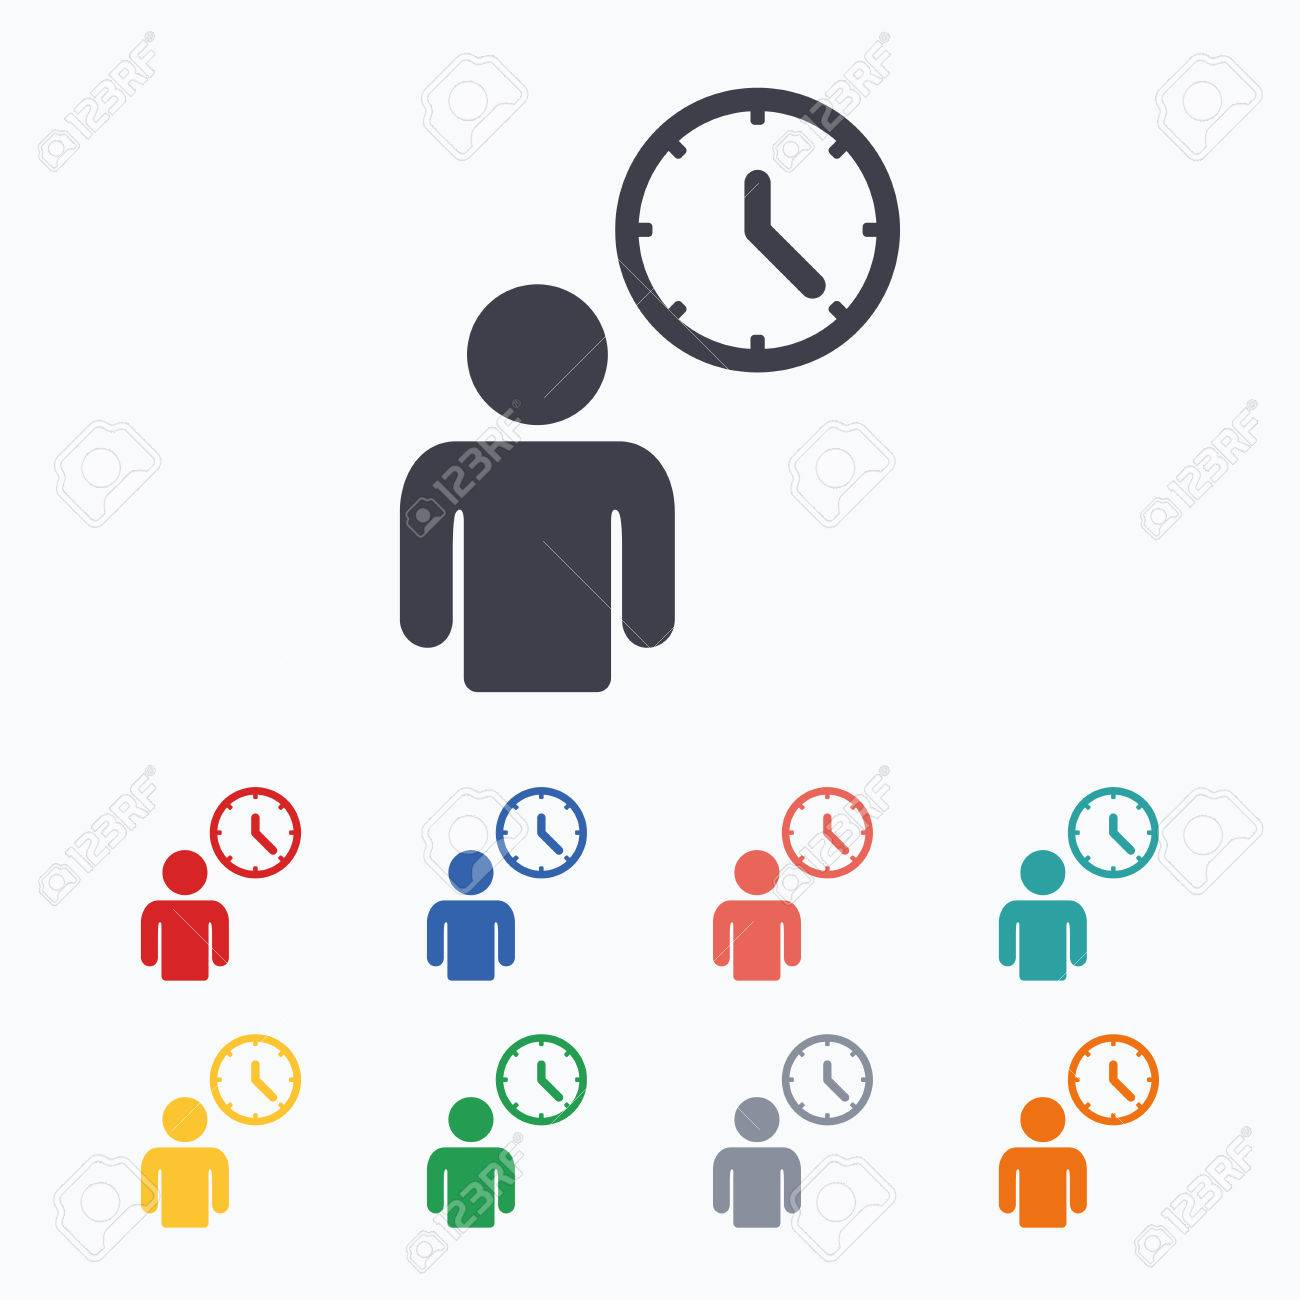 Person waiting sign icon time symbol queue colored flat icons time symbol queue colored flat icons on white background ccuart Images